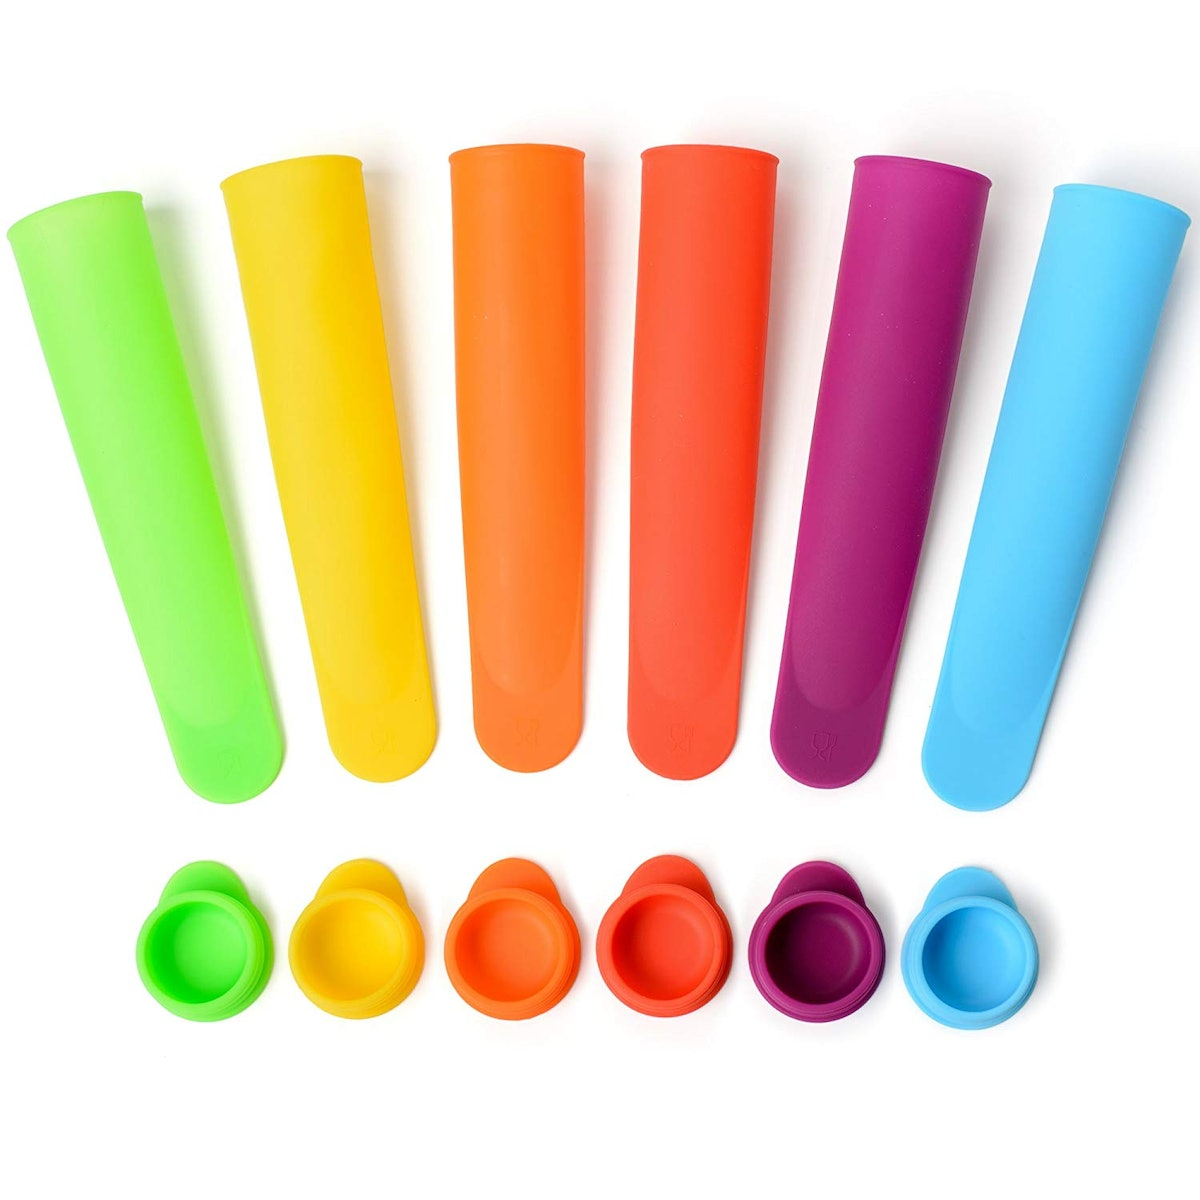 Sunsella Silicone Popsicle Molds